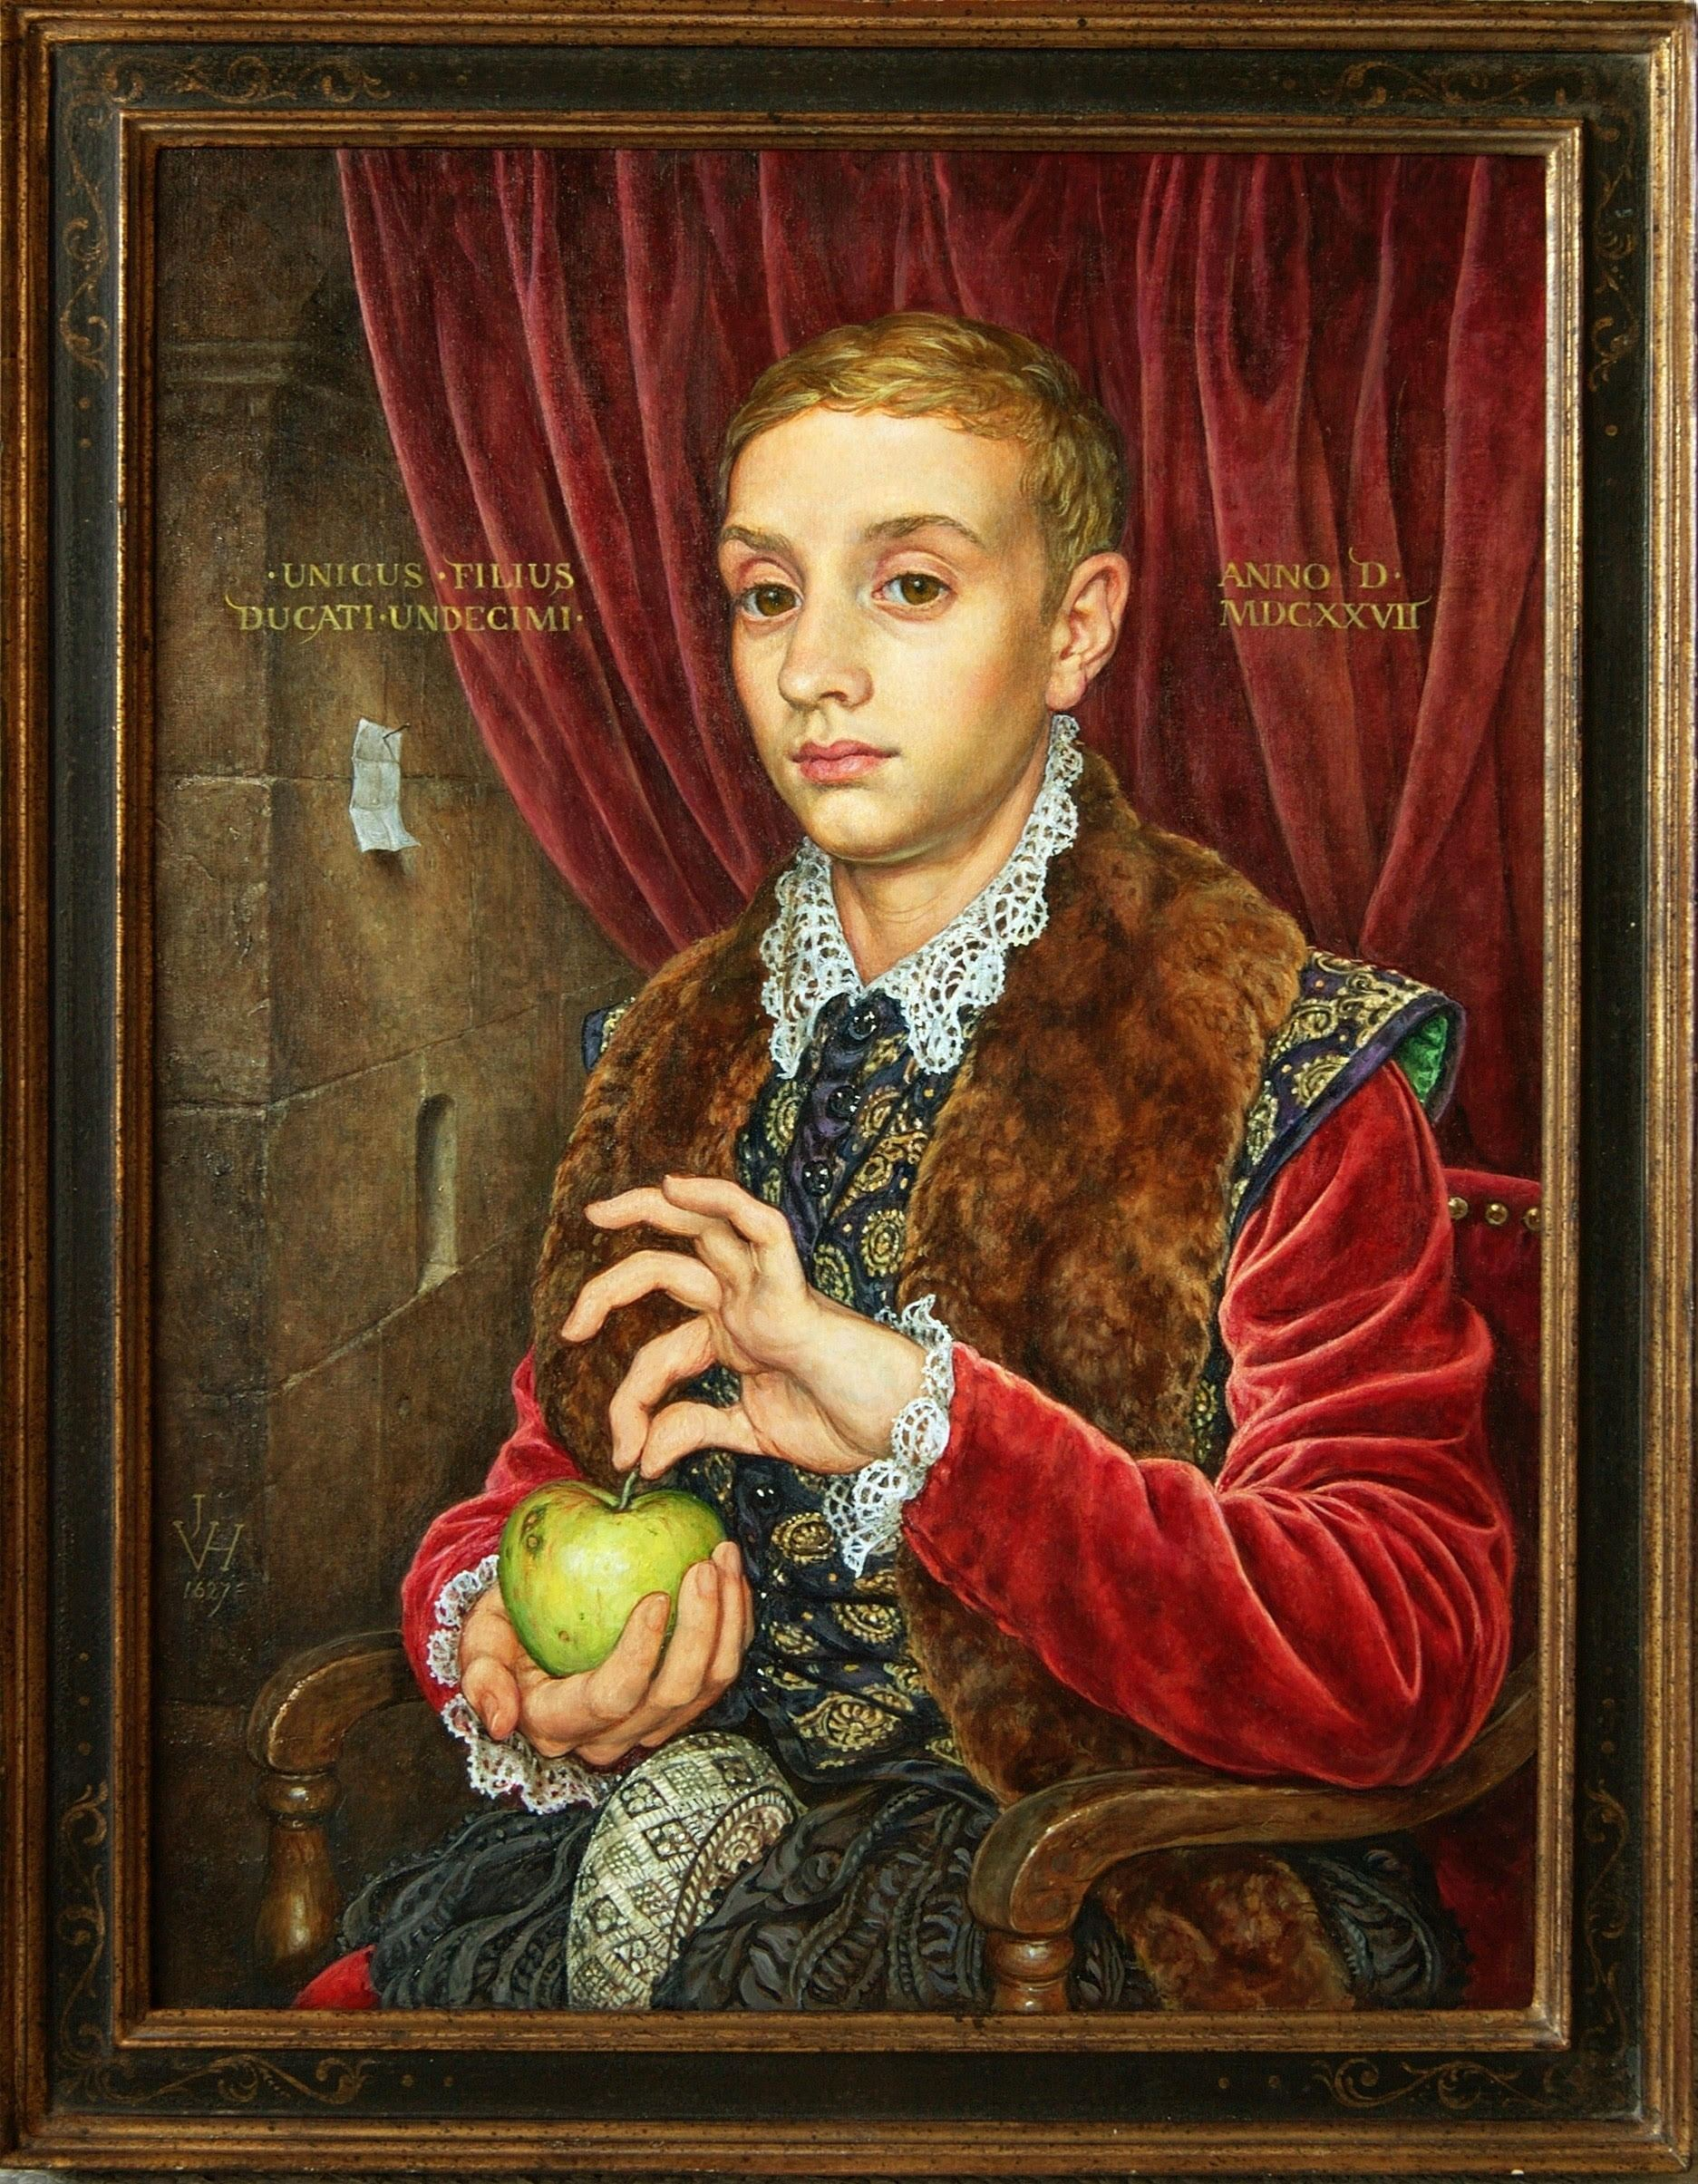 Boy With Apple painting from Wes Anderson's The Grand Budapest Hotel